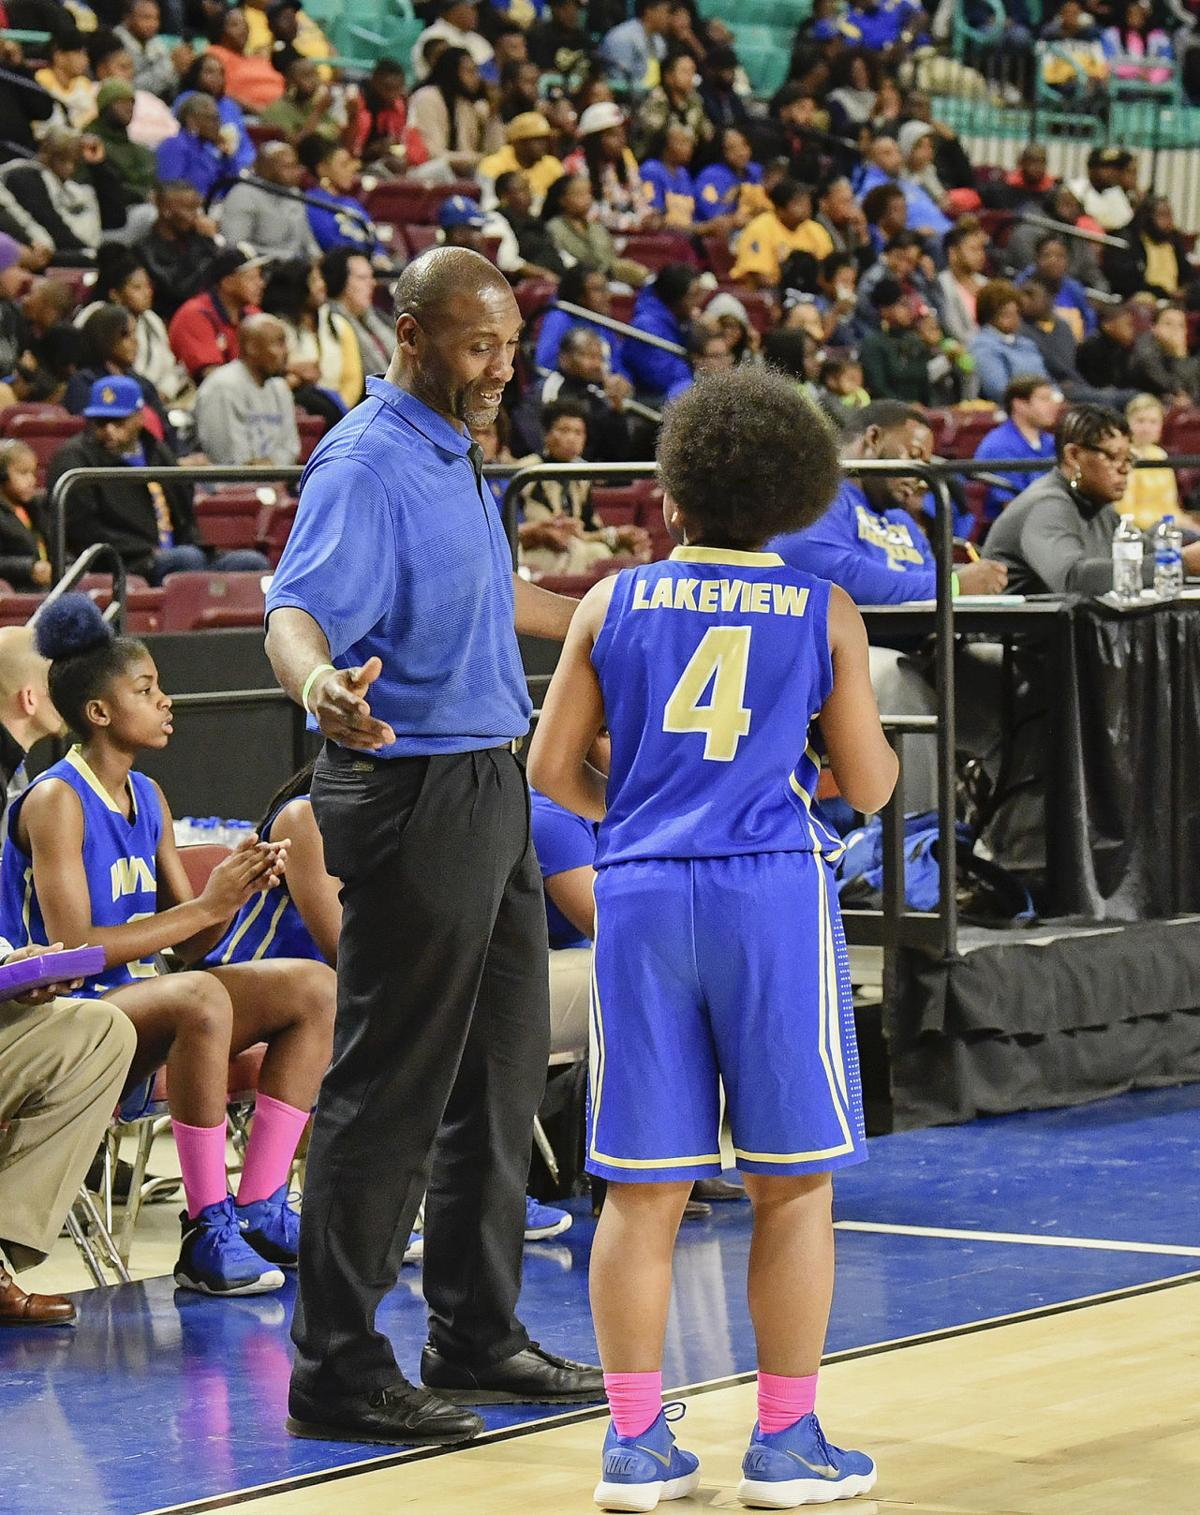 Larry Inman 2019 girls hoops coach of year